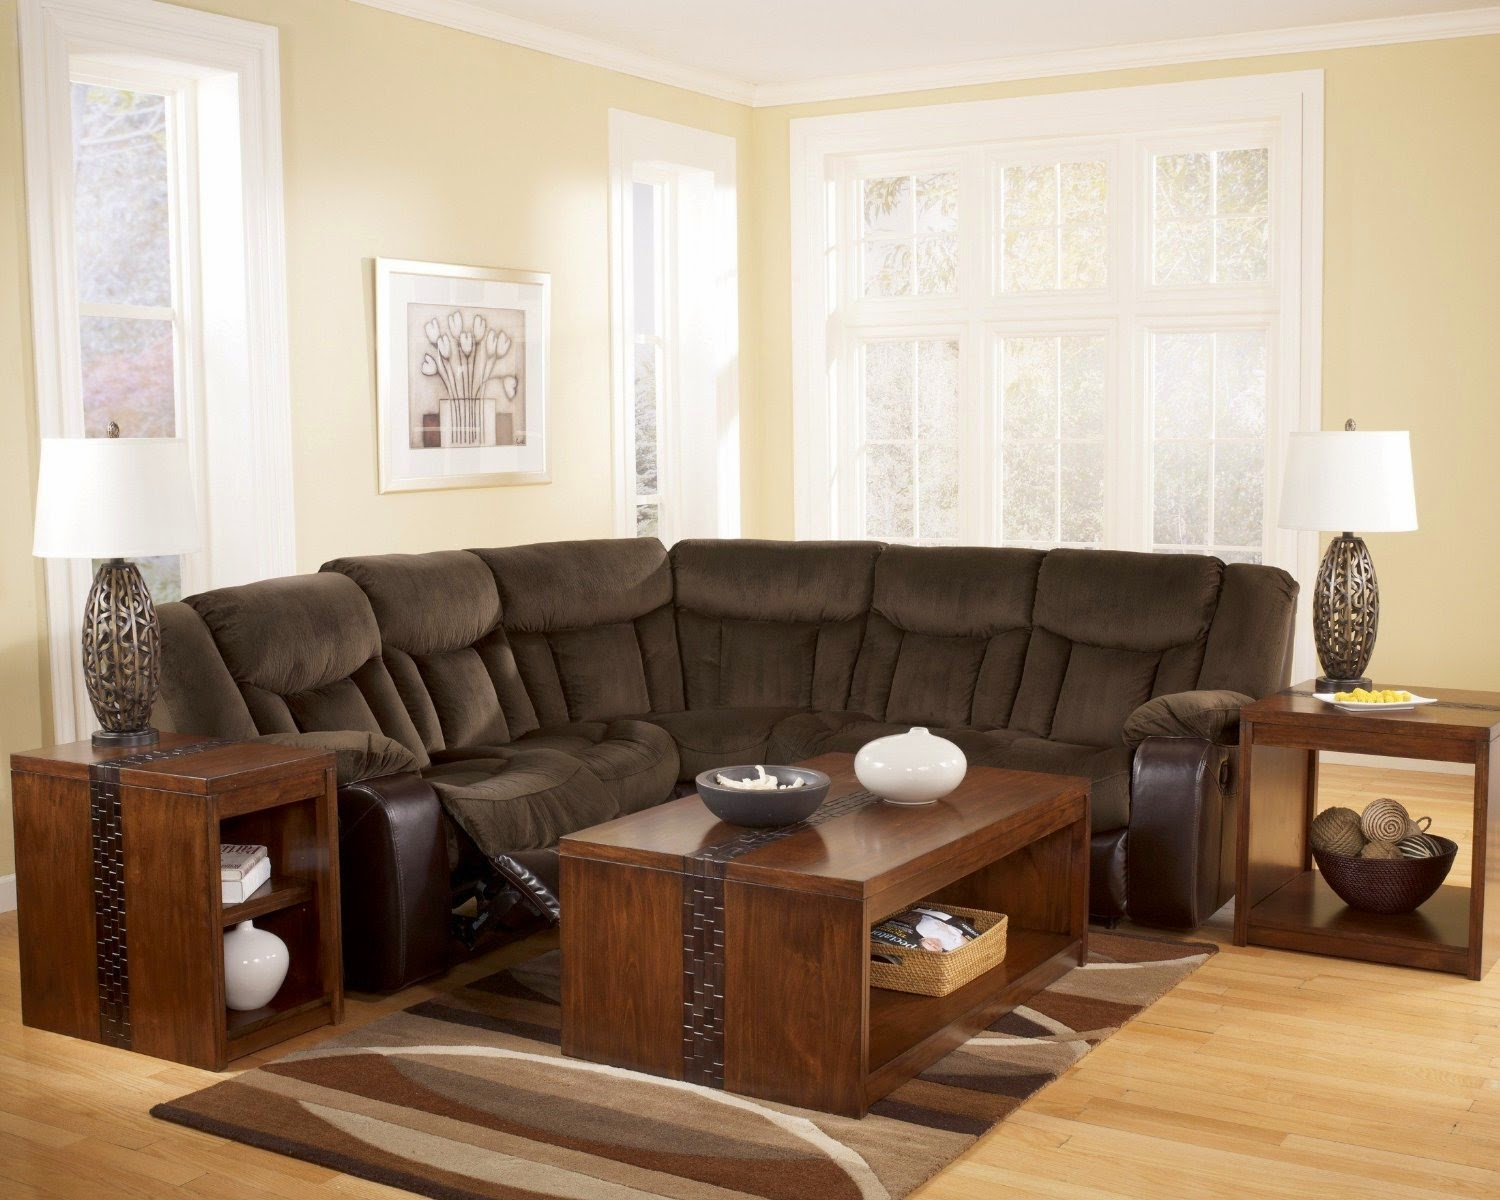 Best Place To Buy Sectional Sofa Cheap Leather Reclining Sets Where Is The Recliner March 2015